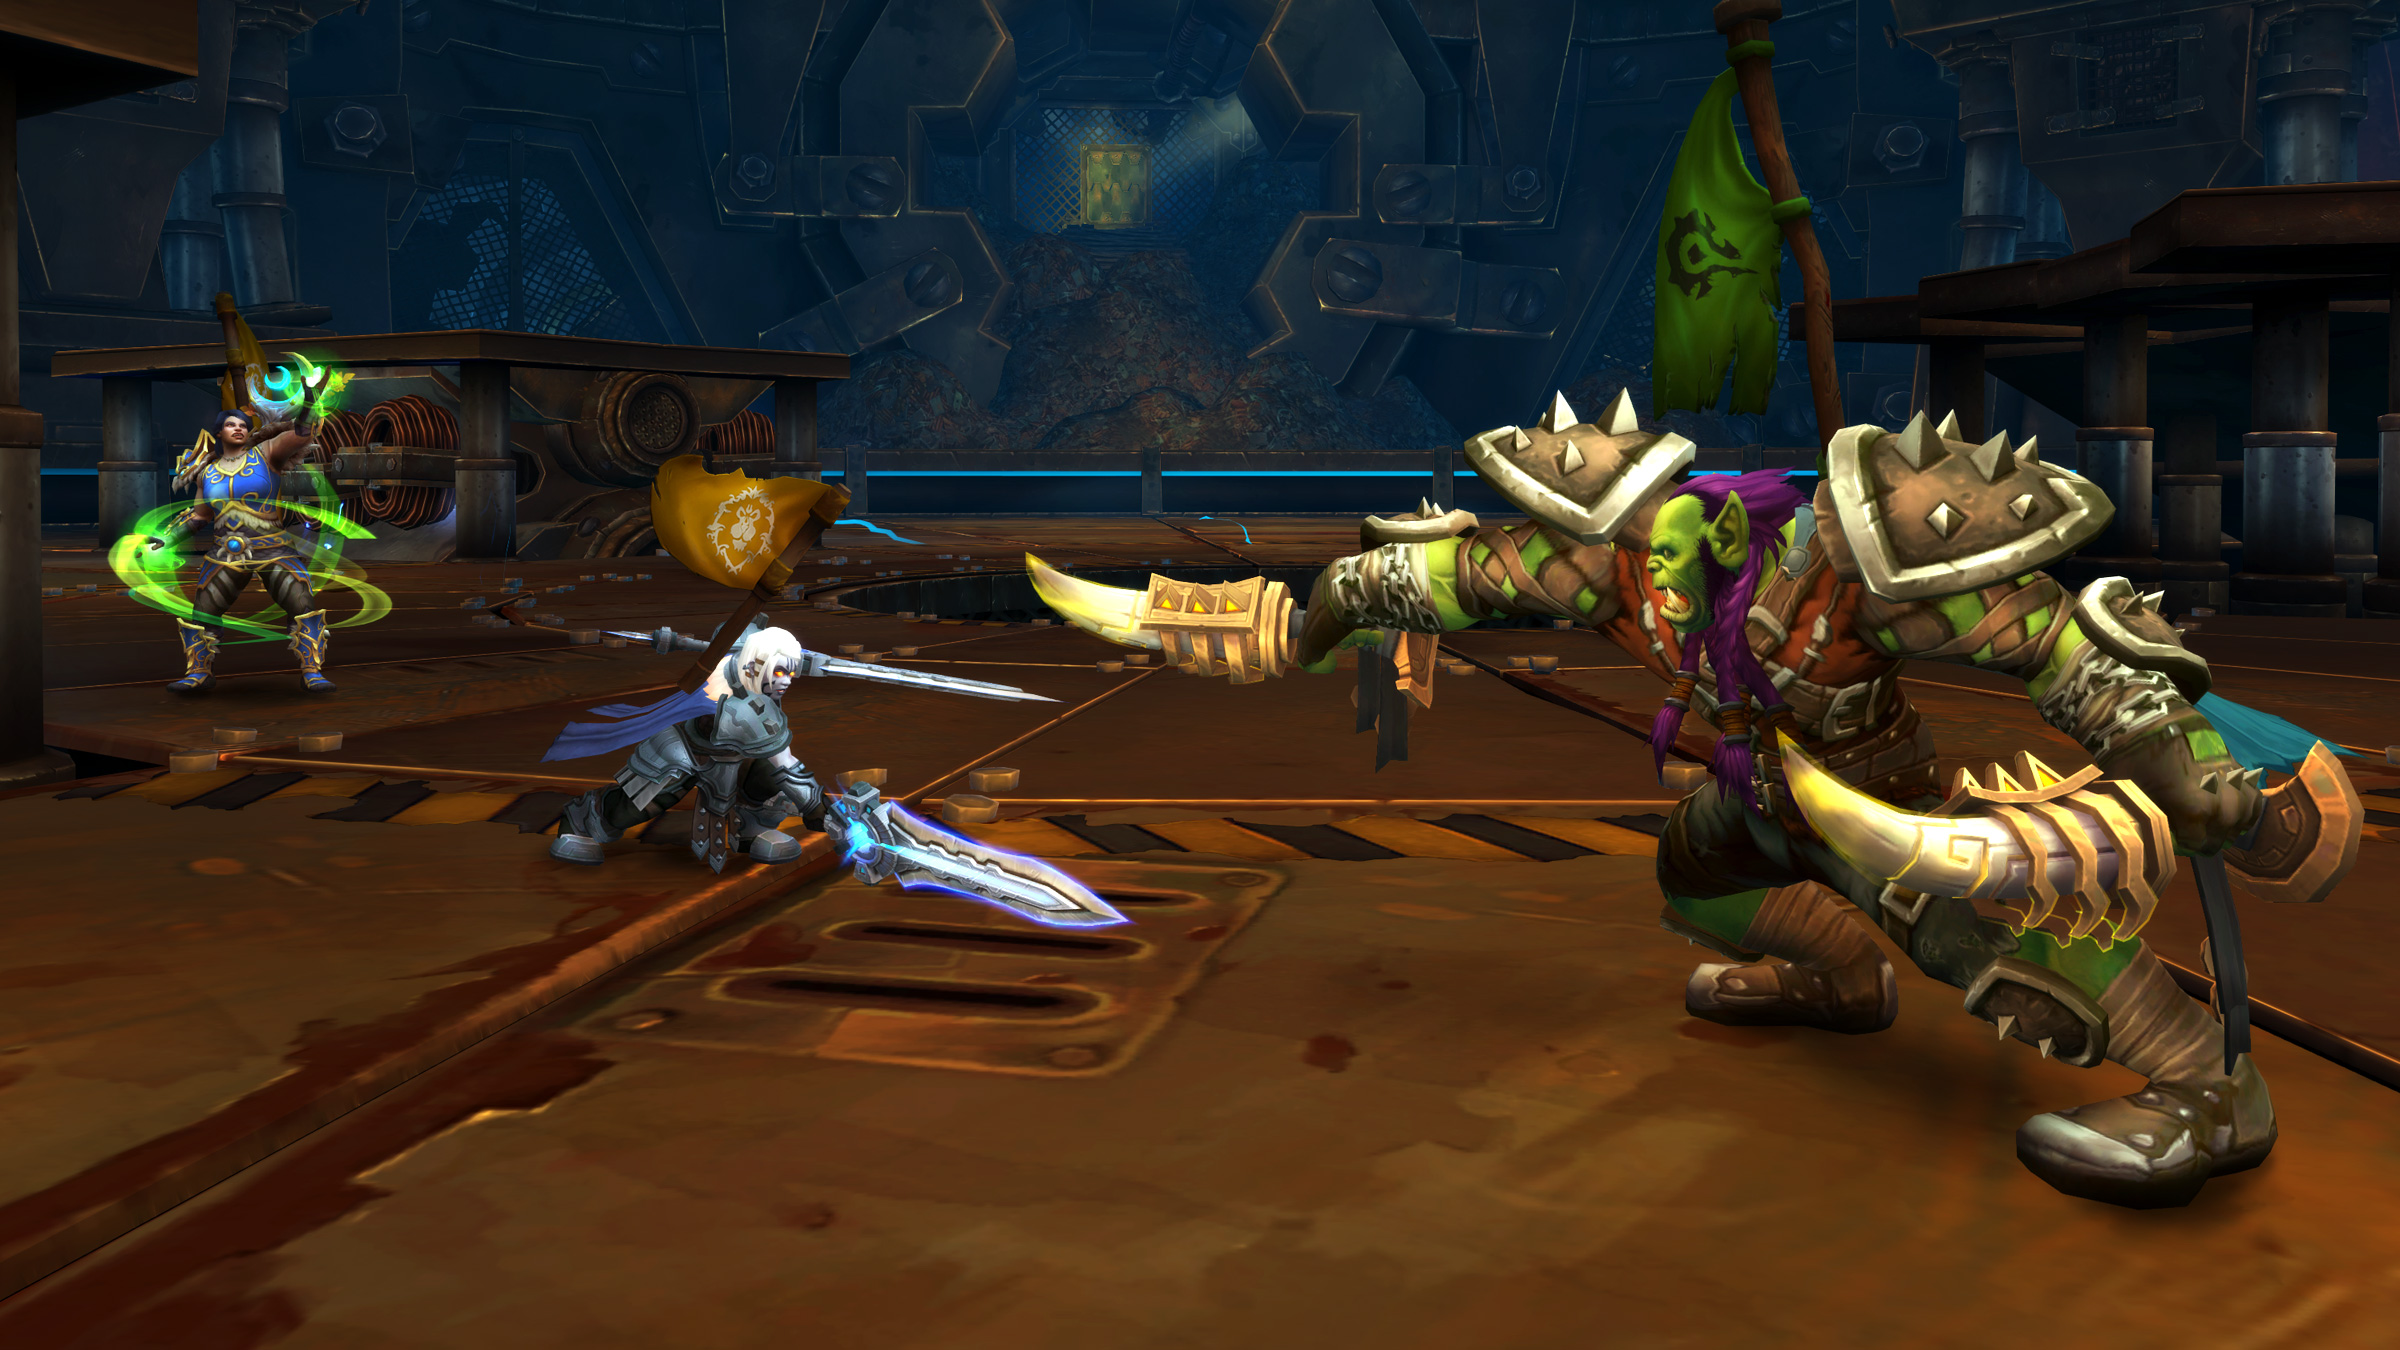 Battle for Azeroth Mythic Keystone Dungeon and PvP Season 3 Has Begun!